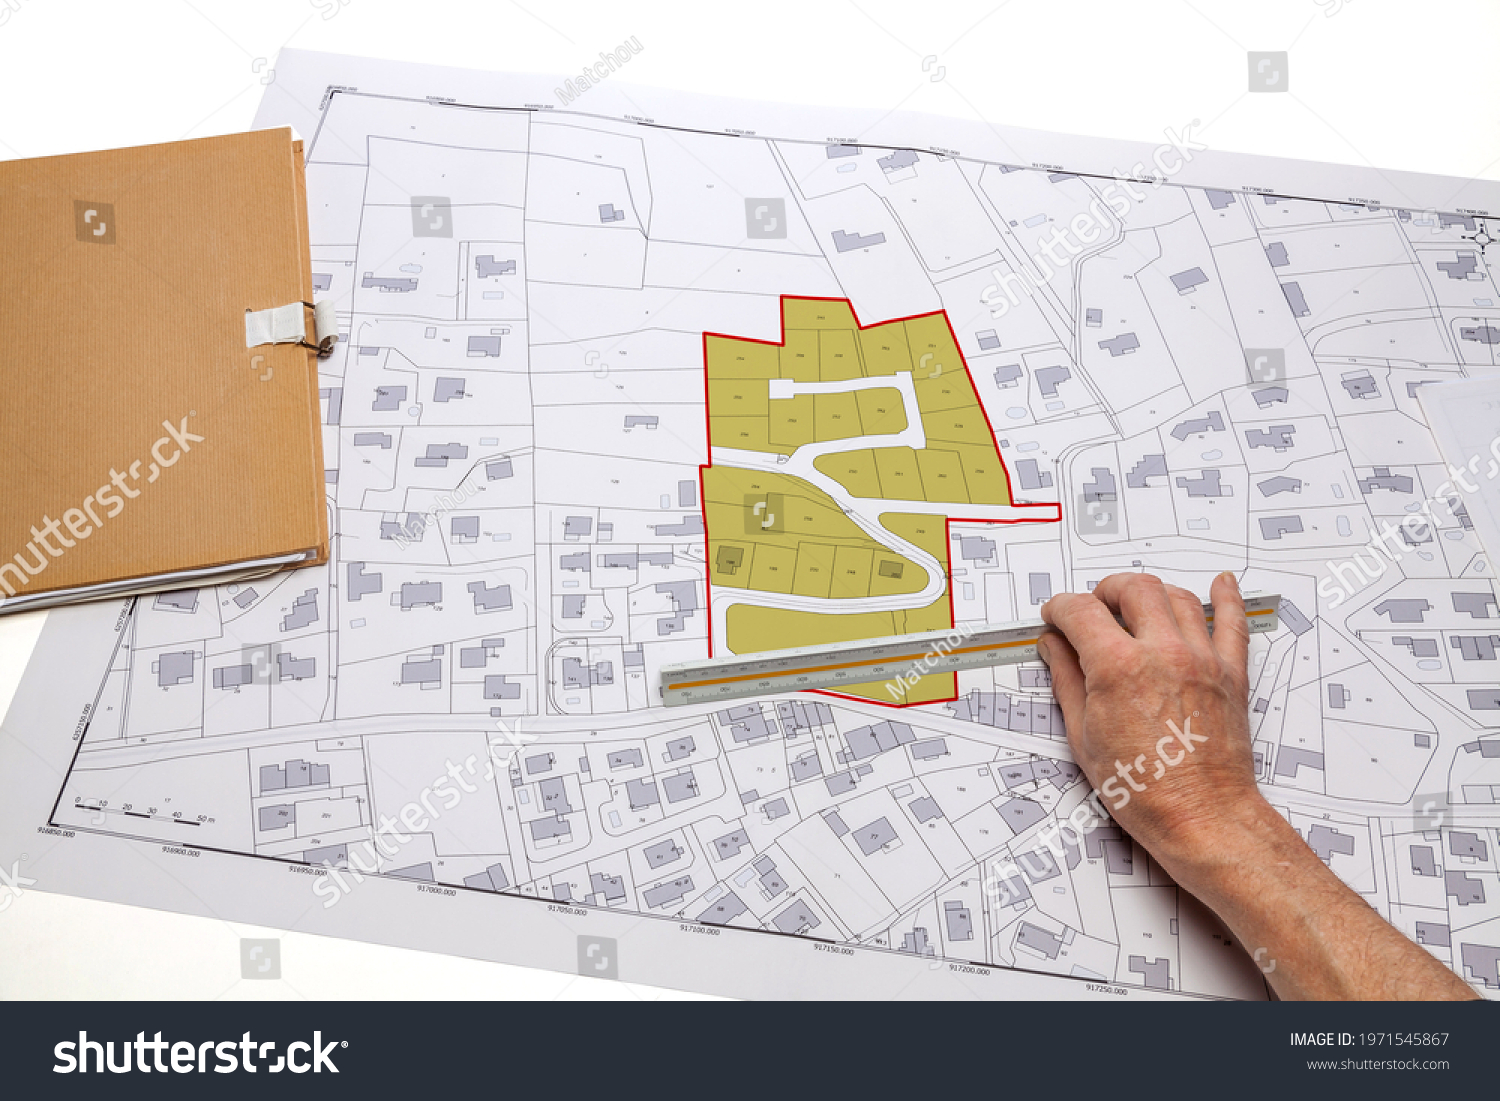 Town planning and land use planning - hand holding a measuring ruler in front of a zoning of plots, on a cadastral plan placed on a desk #1971545867